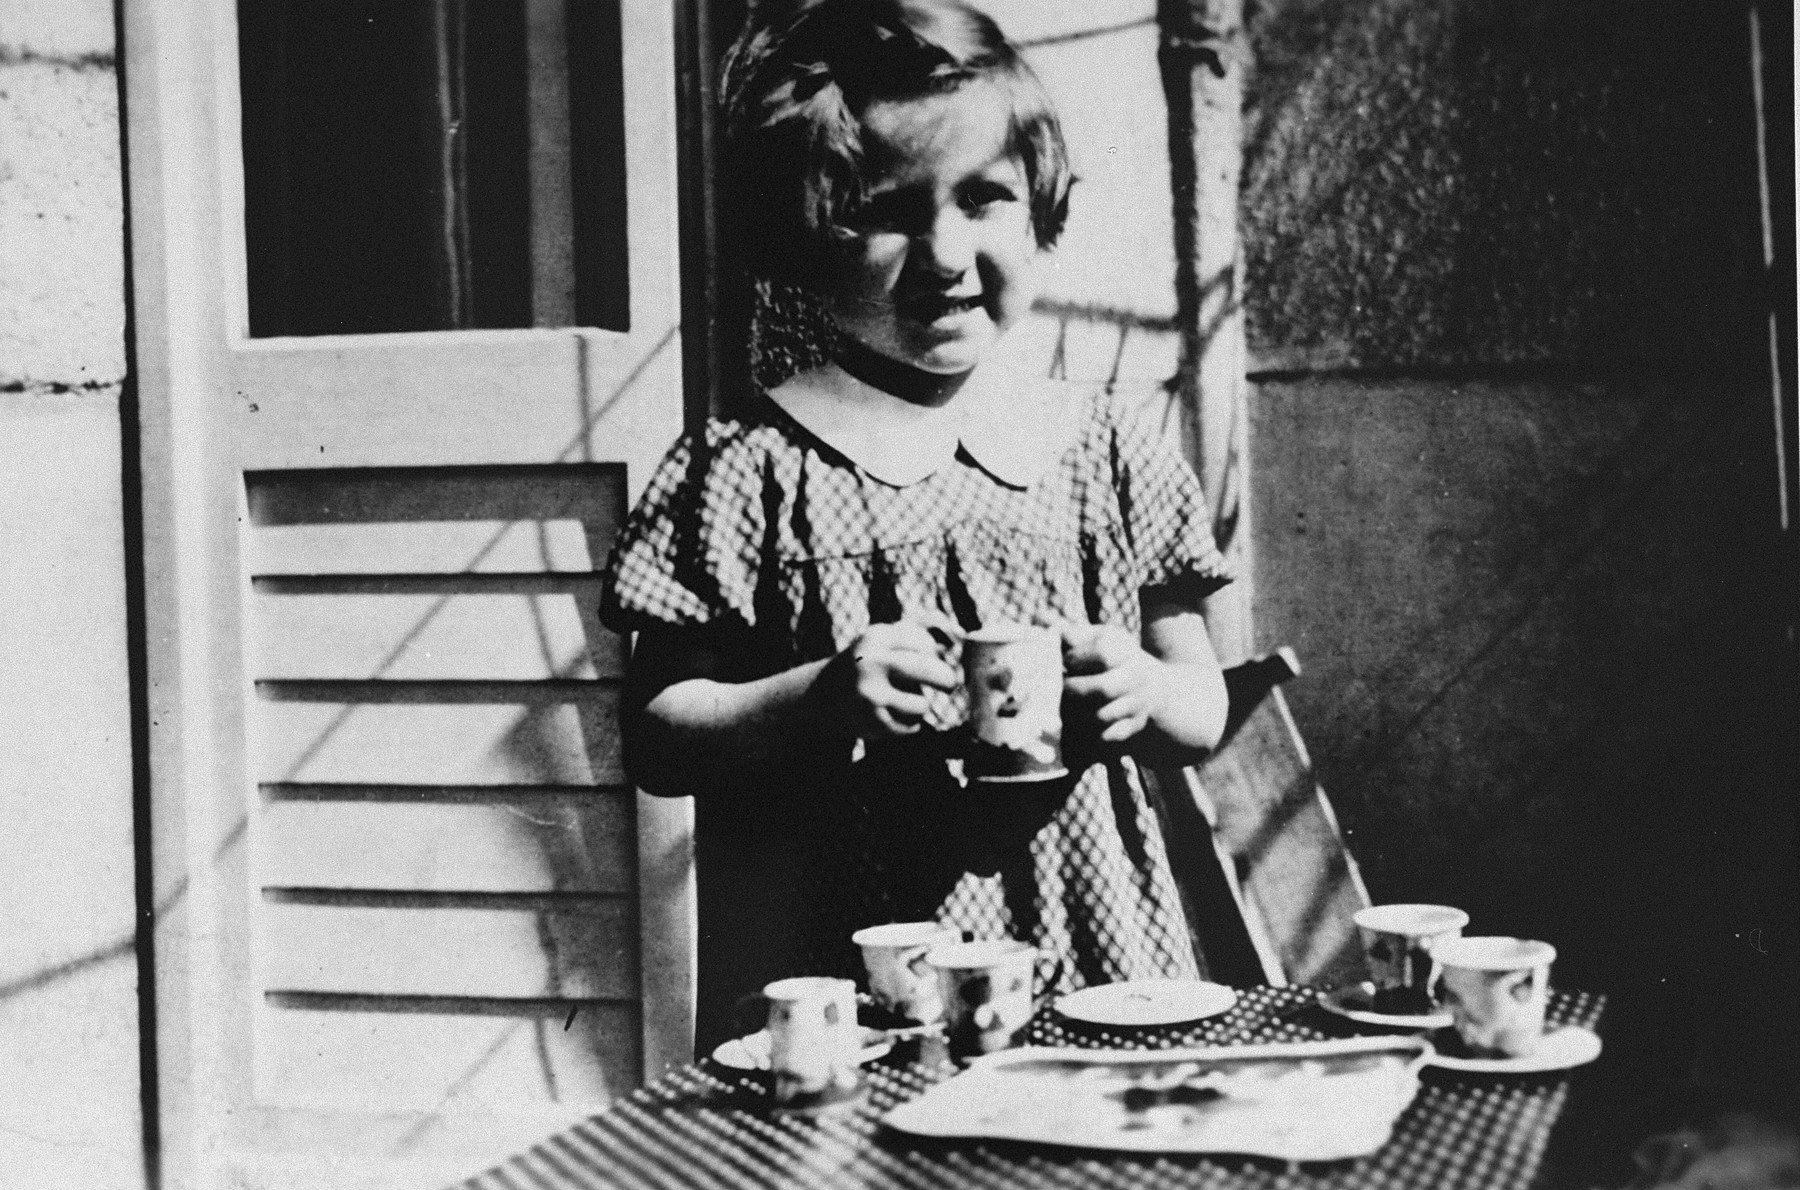 Portrait of Evelyn (Evy) Goldstein as a hidden child in Berlin.